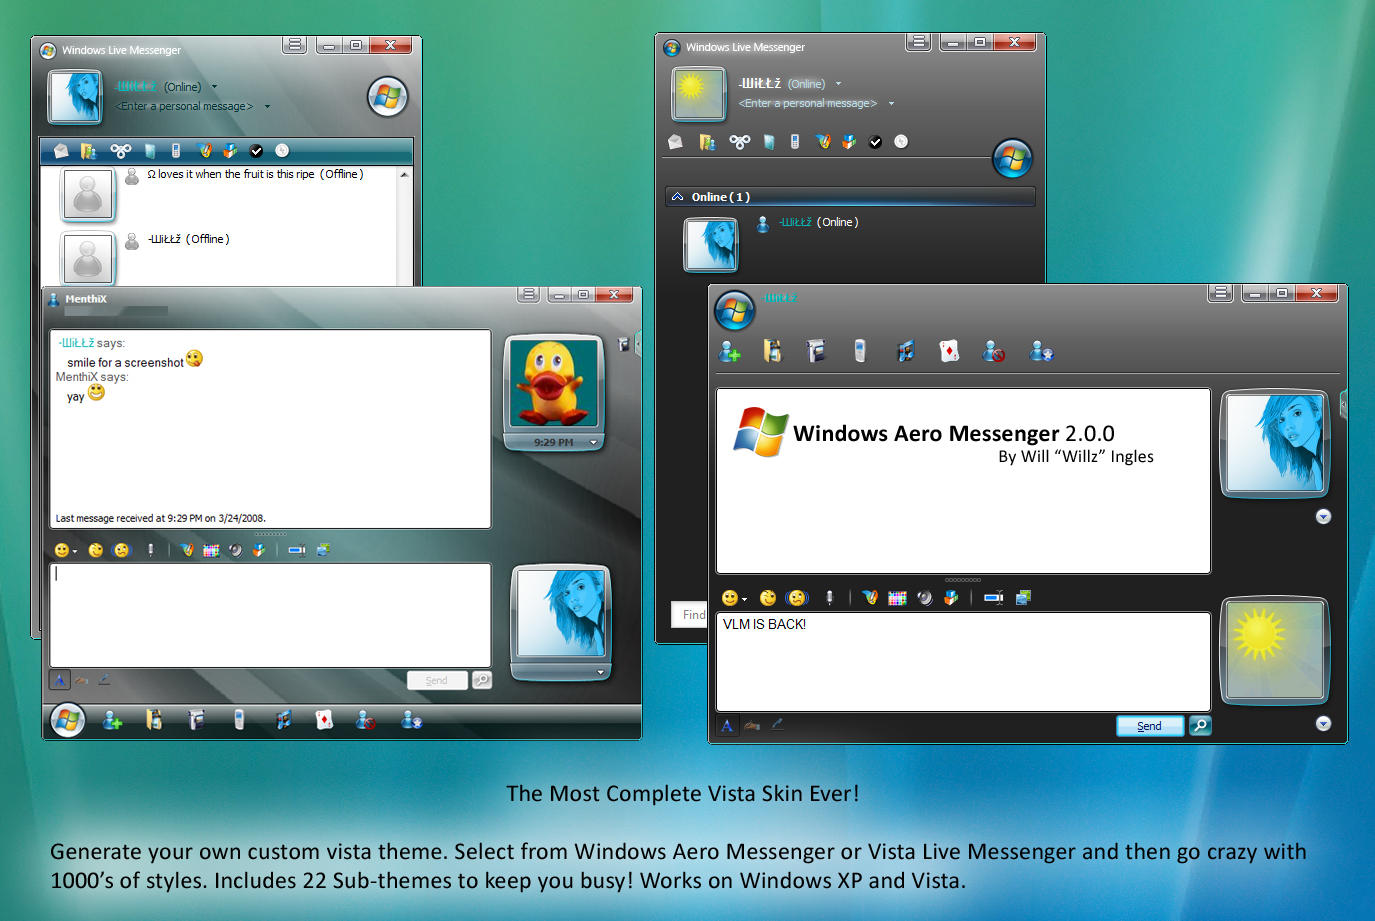 Windows Live Messenger 8 5 Vista Live Messenger 8 5